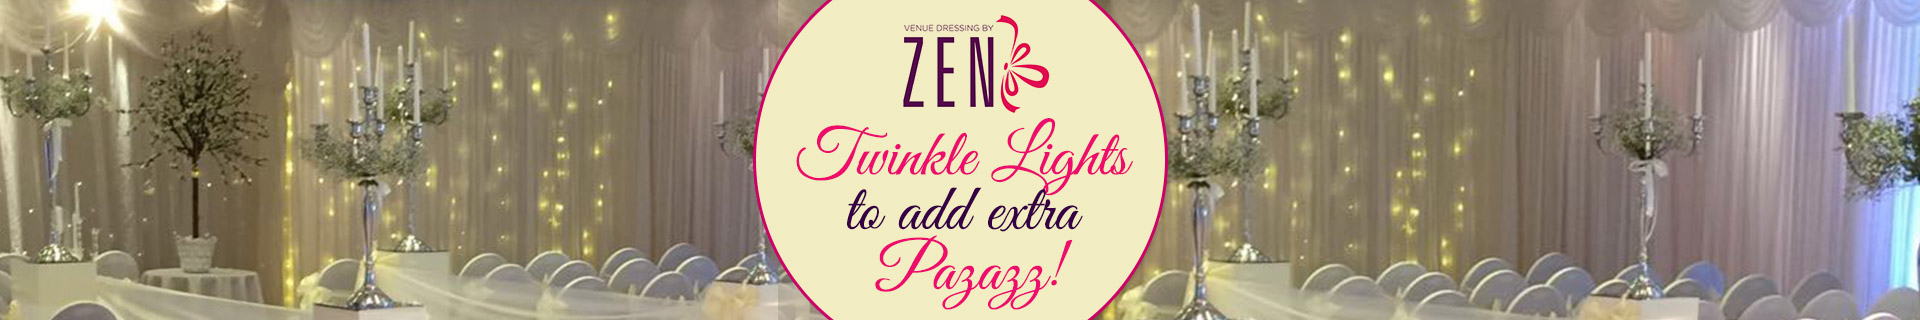 Twinkle Light Backdrops to add Extra Pazazz!